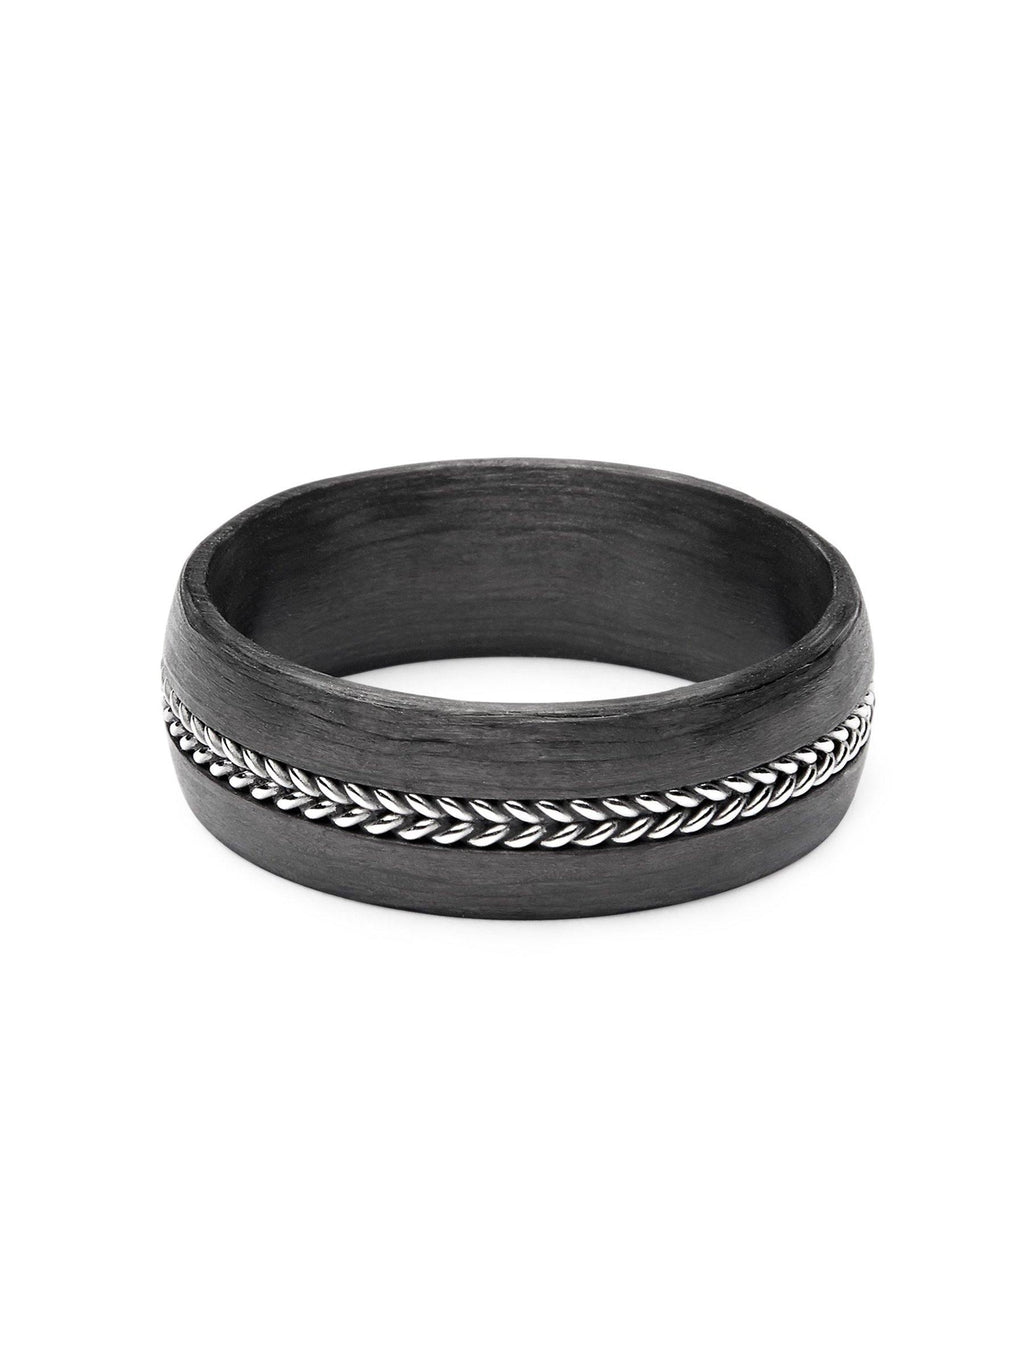 Men's Carbon Fiber Ring with Chain Detail